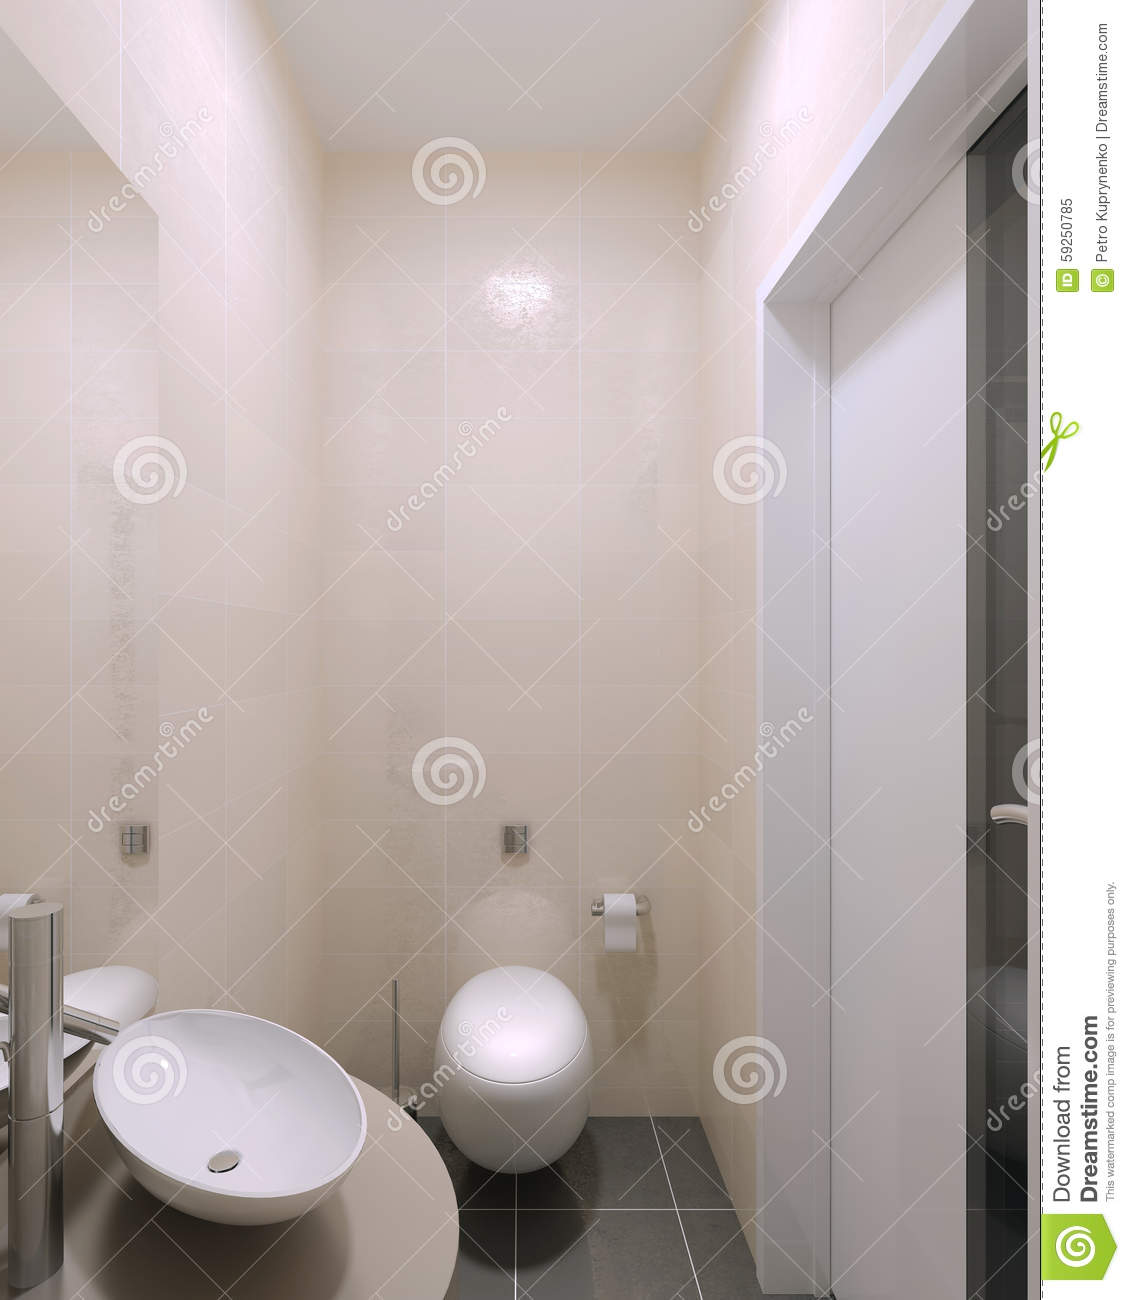 Small Wc Contemporary Interior Stock Illustration Illustration Of